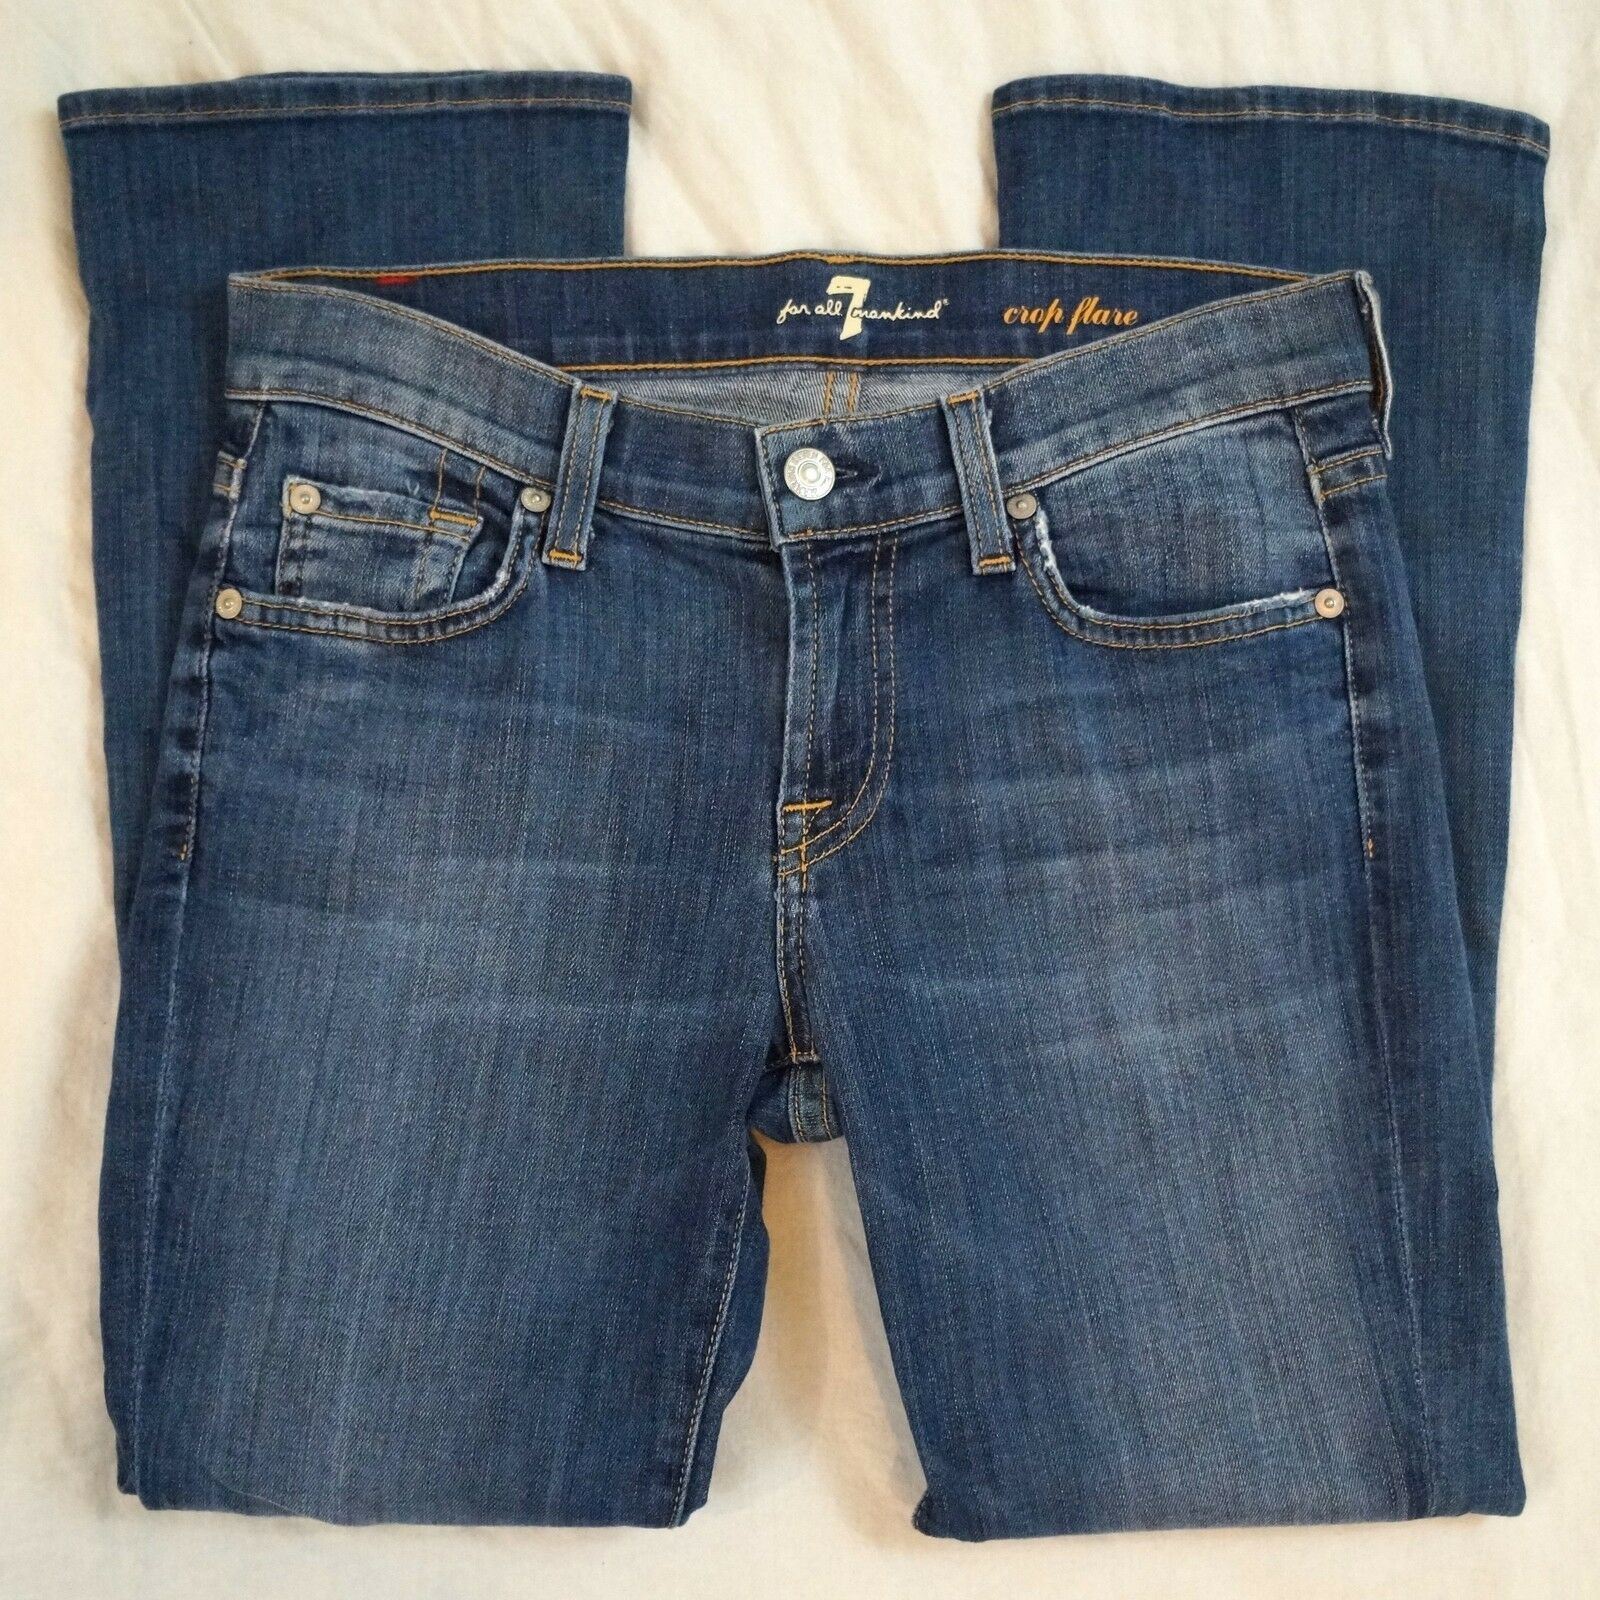 7 For All Mankind Crop Flare Low Rise Medium Wash Jeans Size 26 (F22)